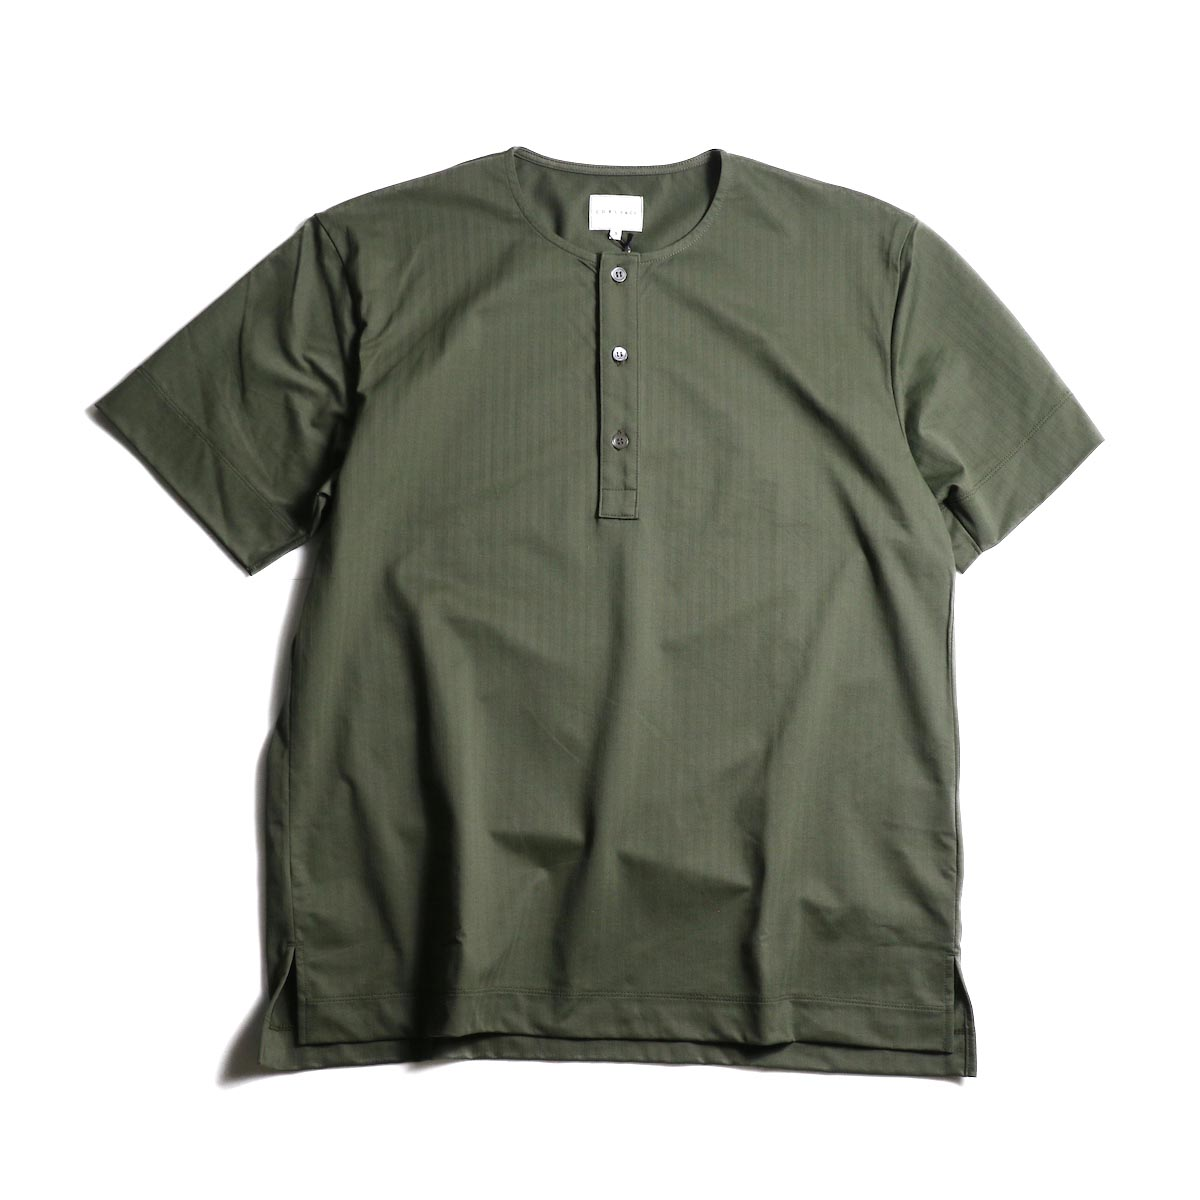 CURLY / SALFORD 3B SS HENLEY (Olive HB)